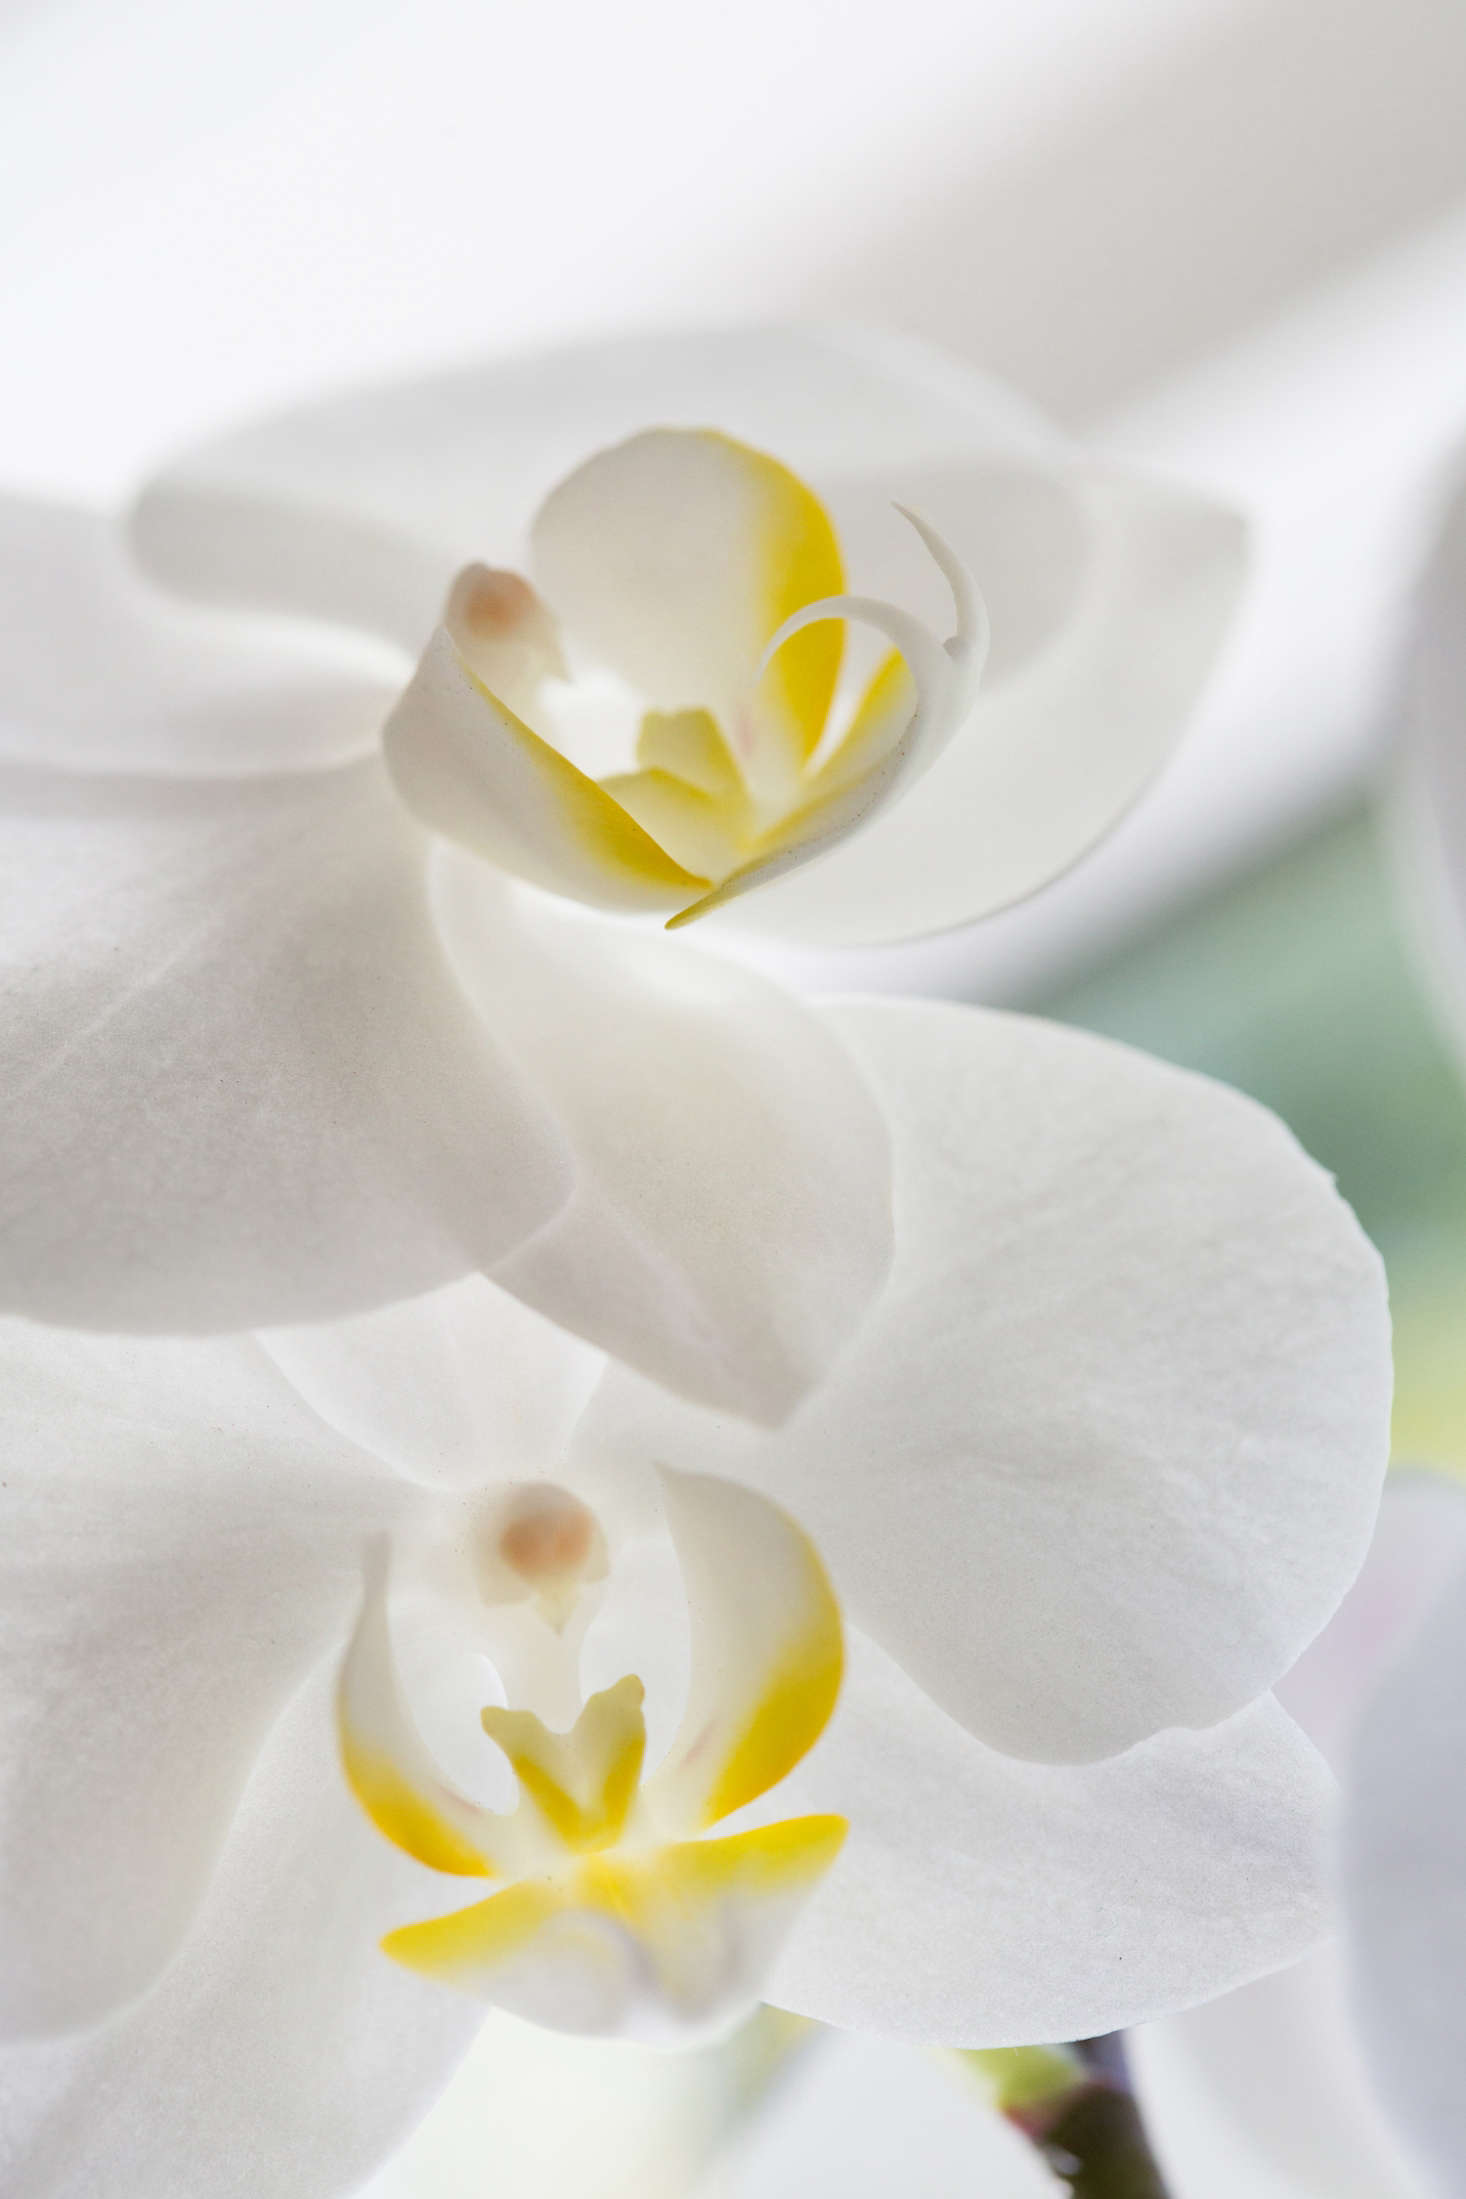 It is amazing, really, that Phalaenopsis orchids are sold at the supermarket, the big-box shop, and possibly even your gas station&#8